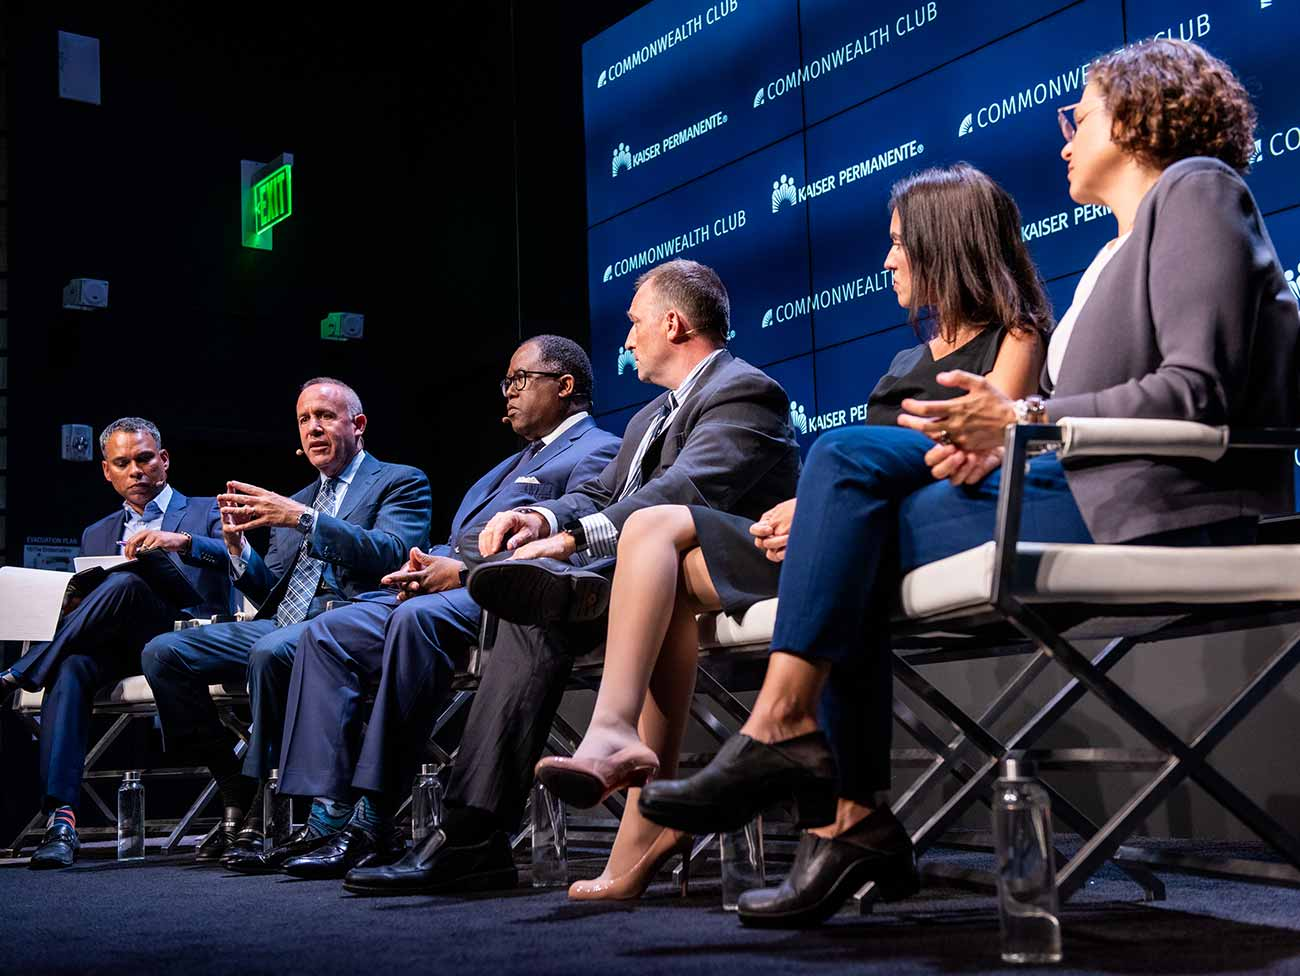 Panel of 6 individuals seated on stage in front of a screen with Kaiser Permanente and Commonwealth Club logos